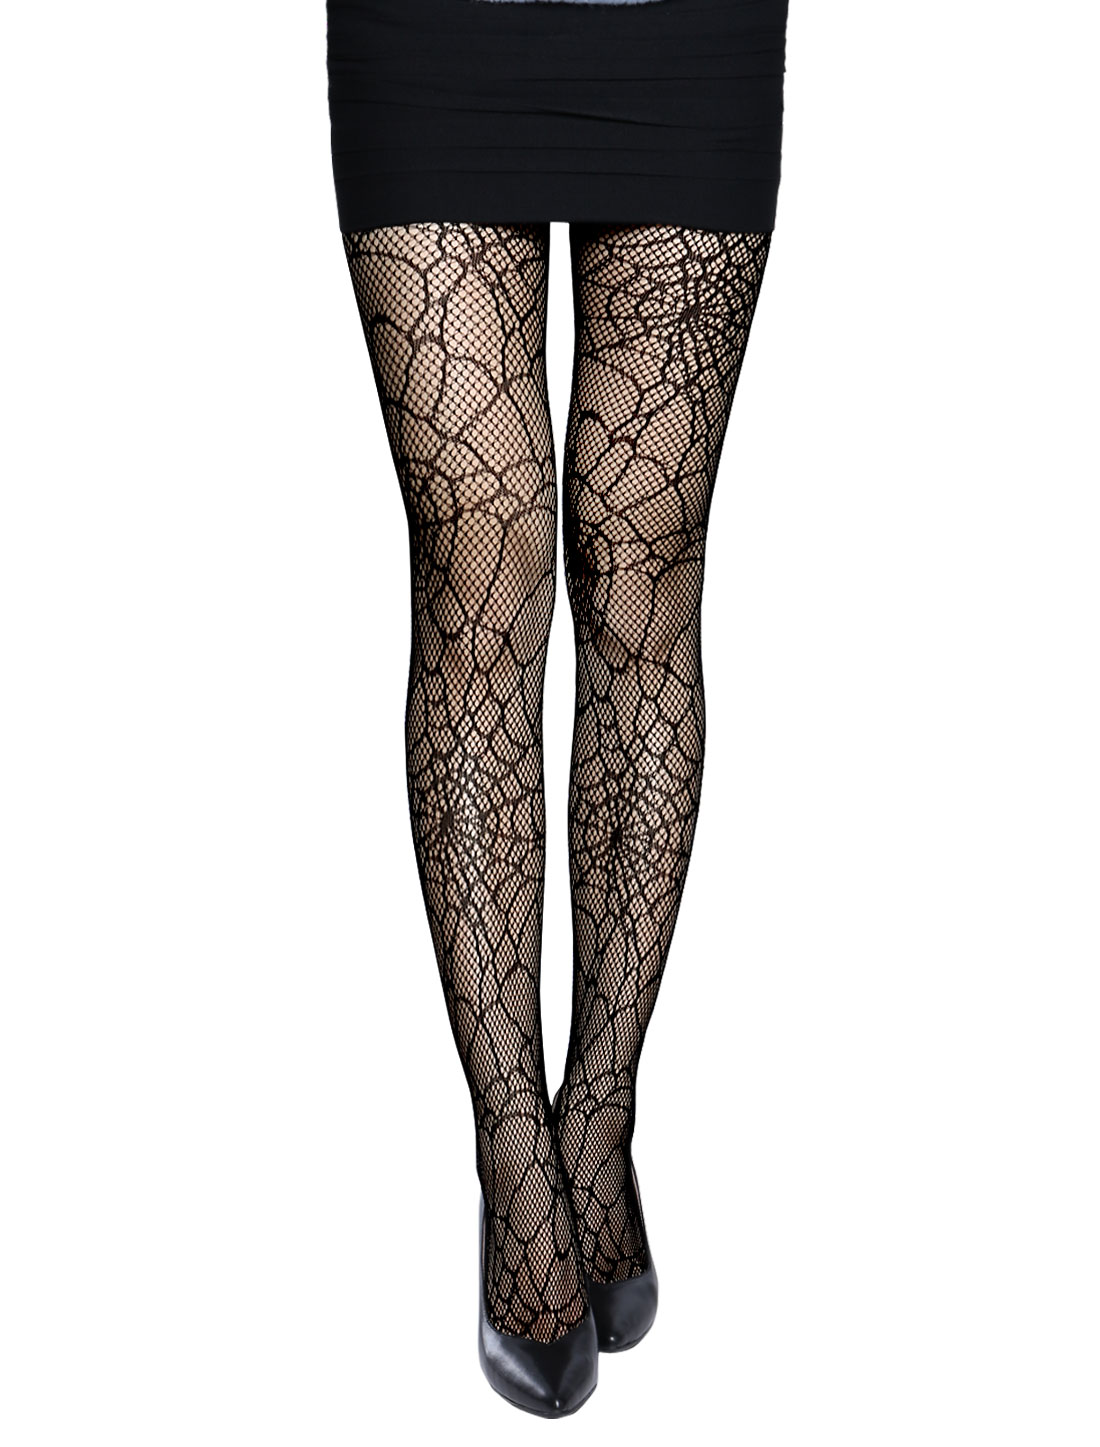 Women Stretchy Spider Web Design Seamless Sexy Fishnet Pantyhose Black XS